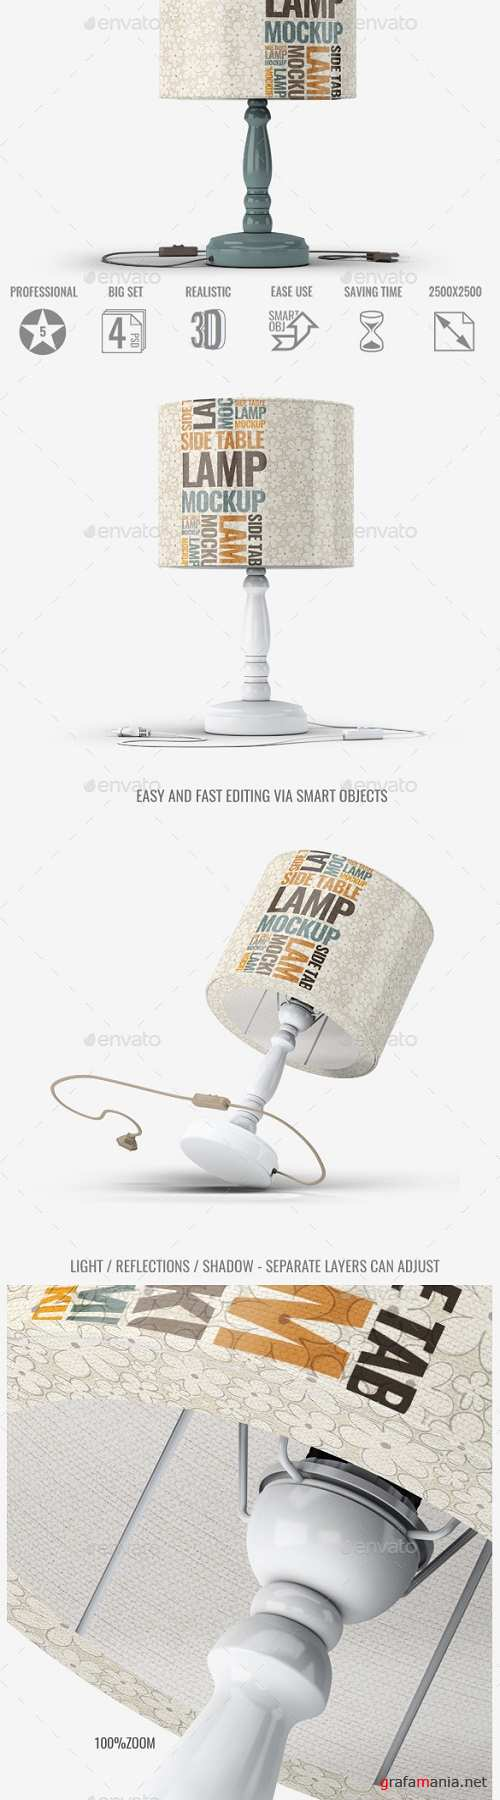 Table Lamp Mock-Up 22834286